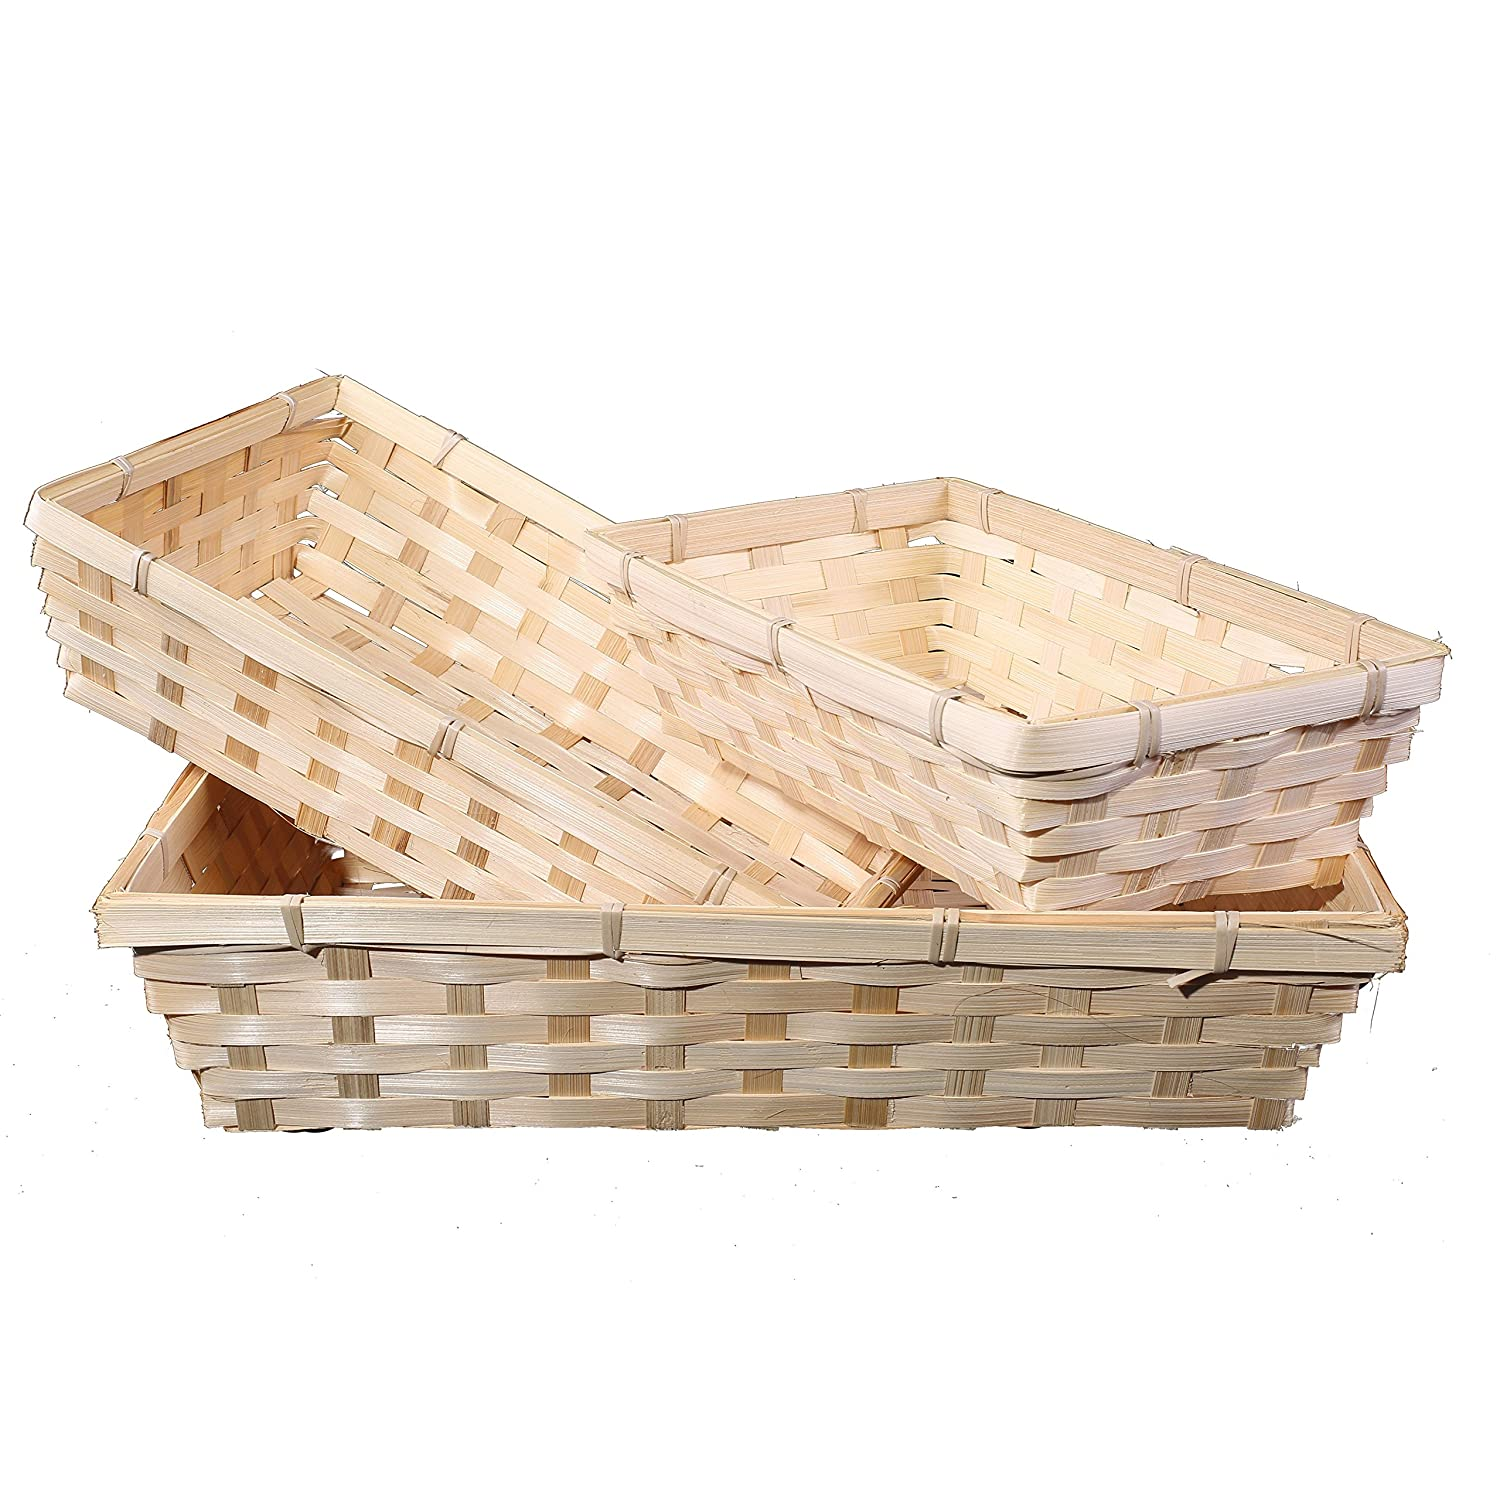 10 x Bamboo Natural Color Wicker Bread Basket Storage Hamper Display Tray (Extra Large) Basic House